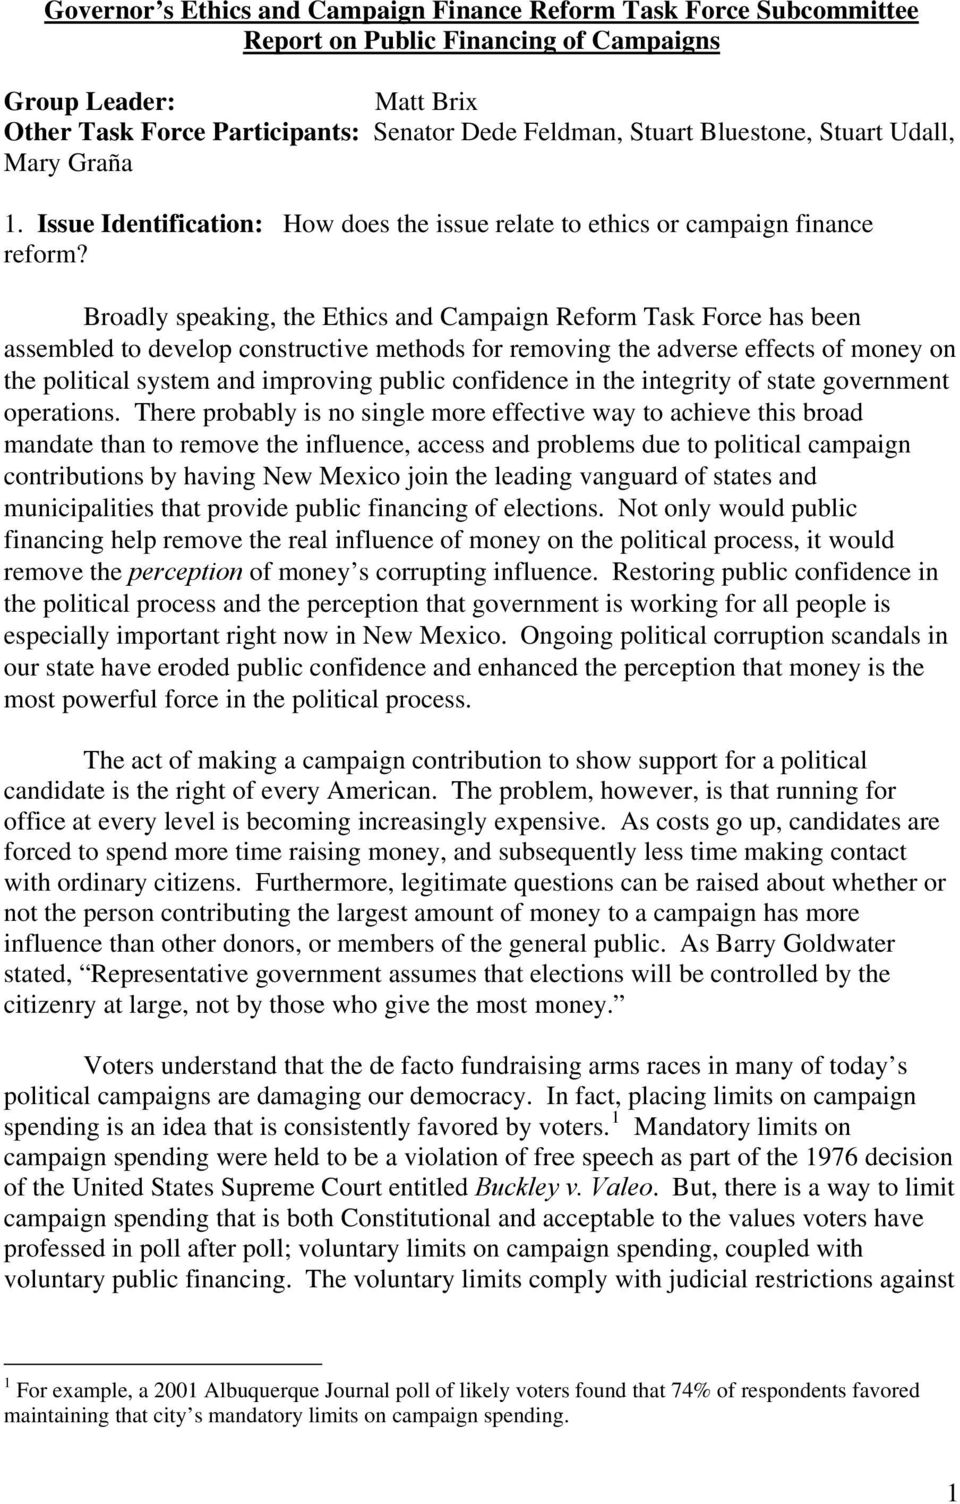 Broadly speaking, the Ethics and Campaign Reform Task Force has been assembled to develop constructive methods for removing the adverse effects of money on the political system and improving public